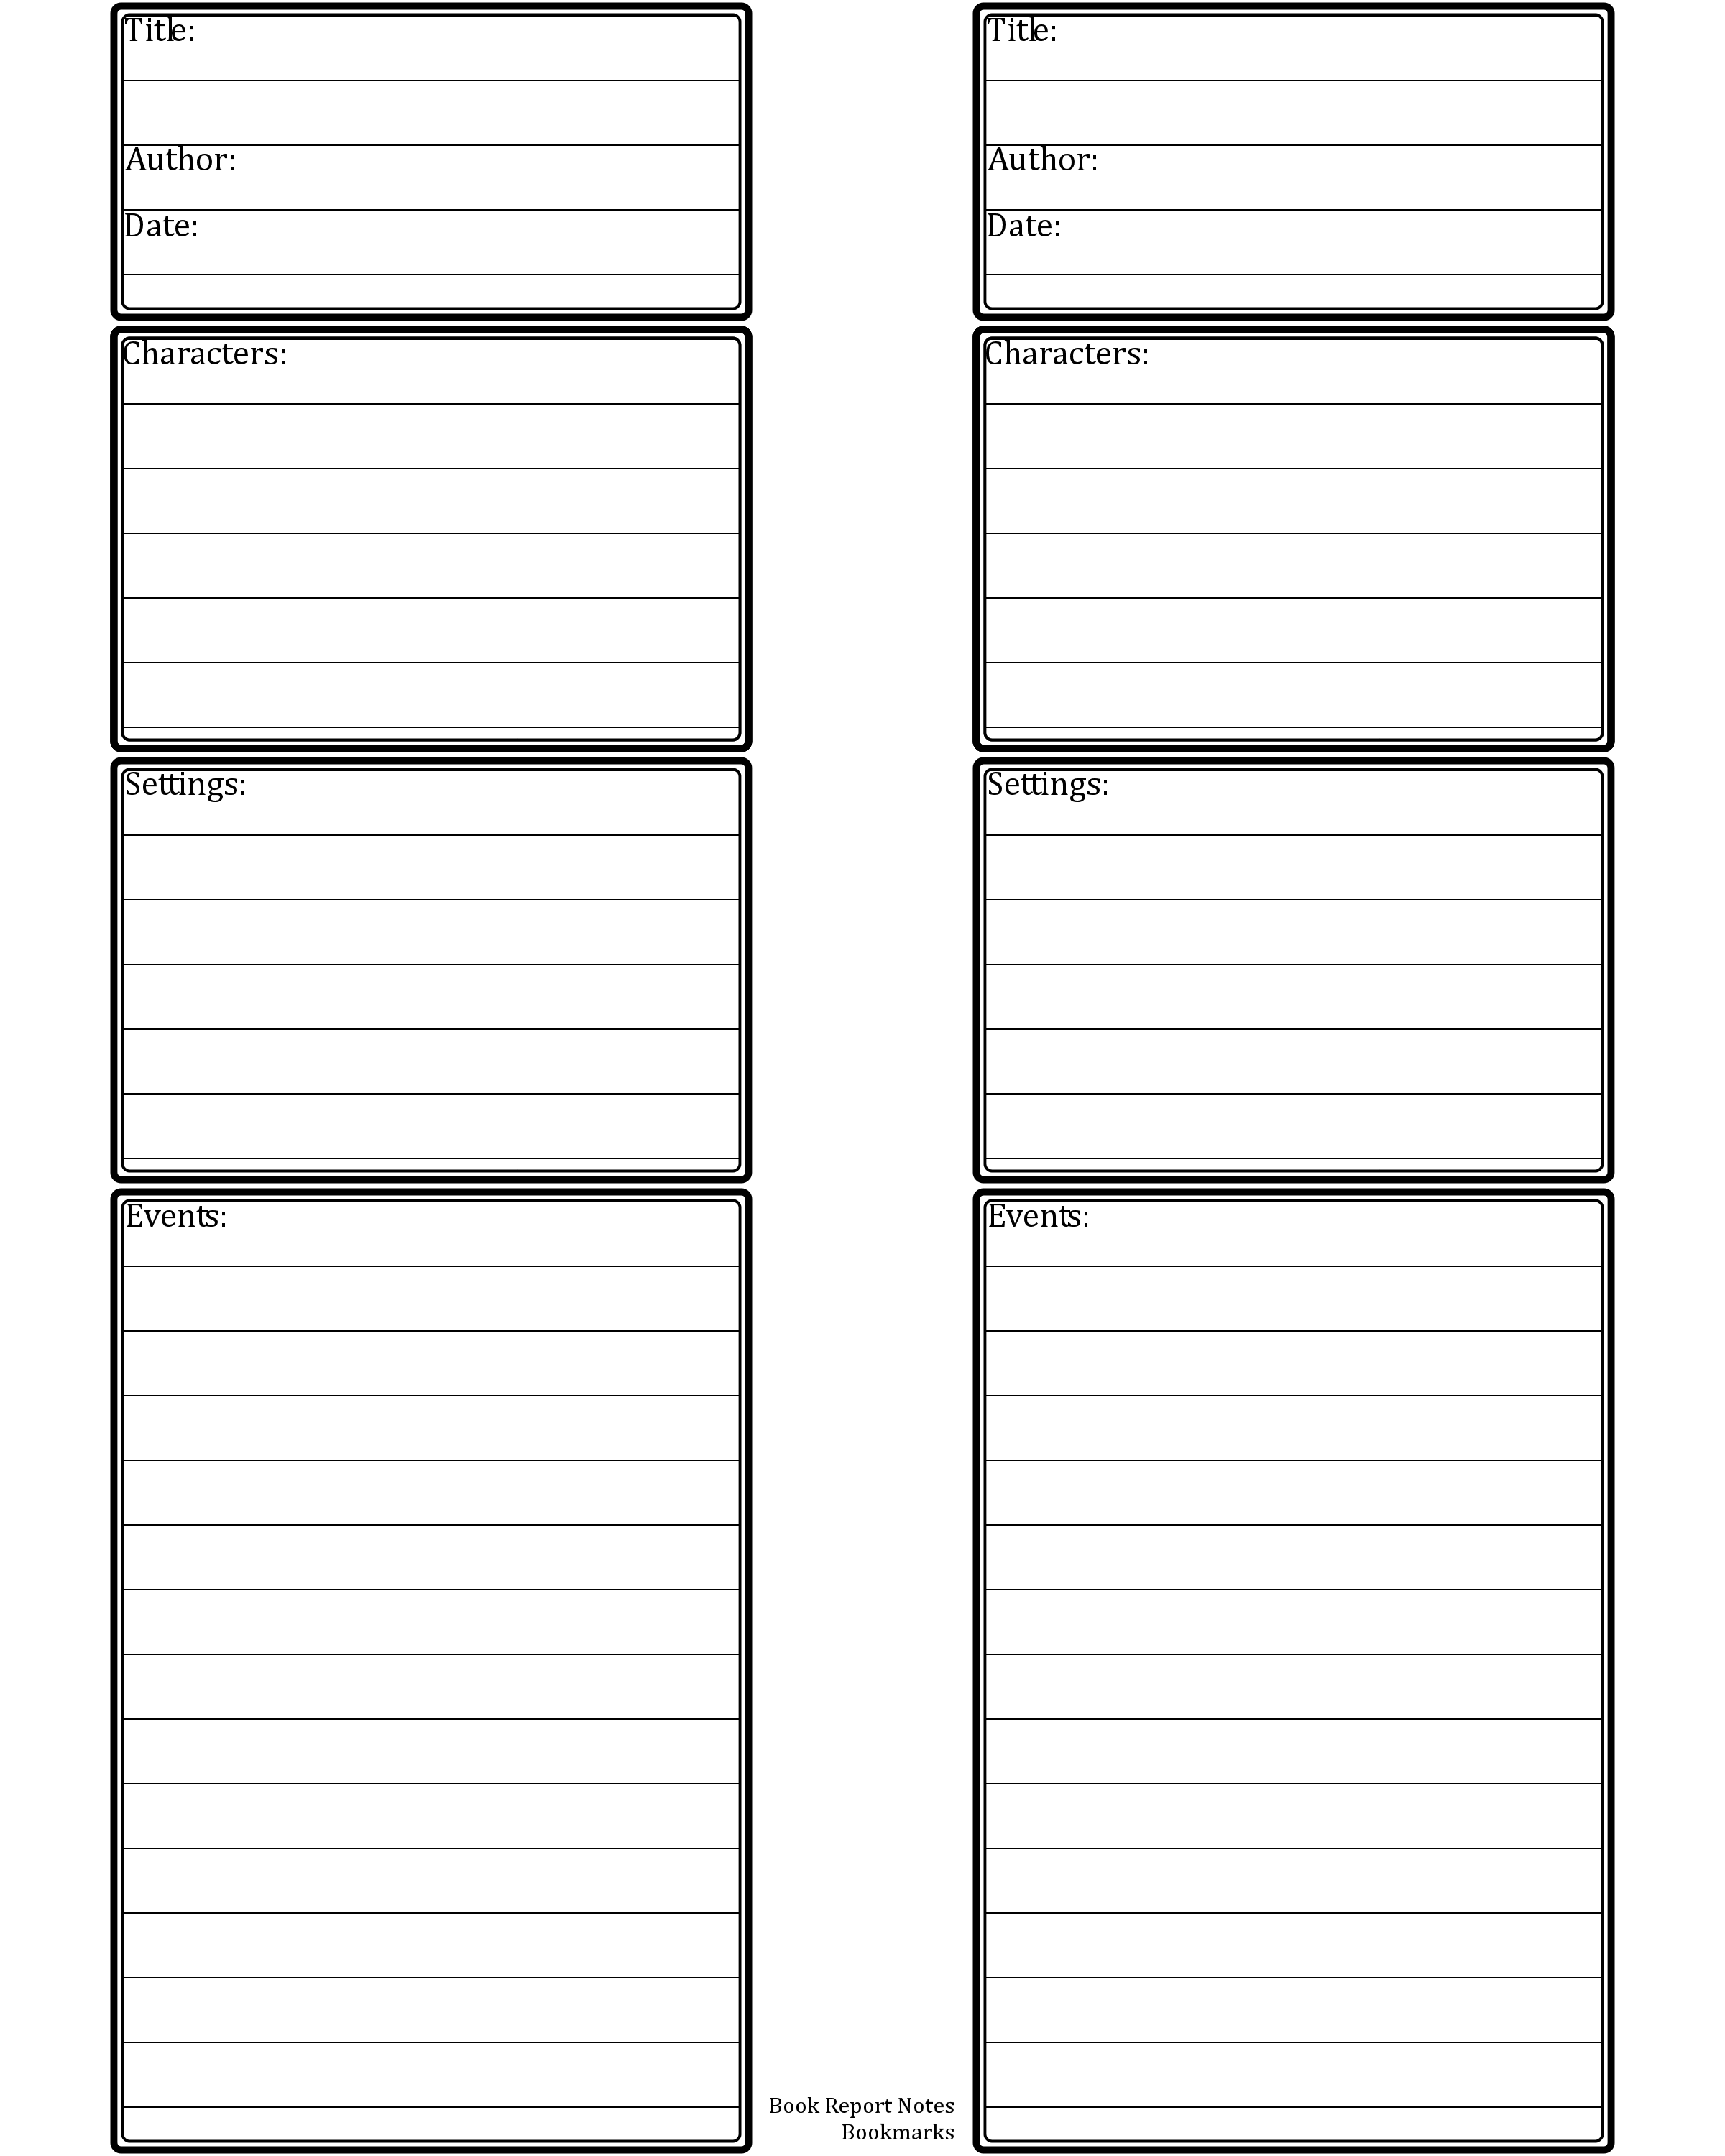 book report templates for highschool students book report printable handout for teachers and students k book report printable handout for teachers and students k